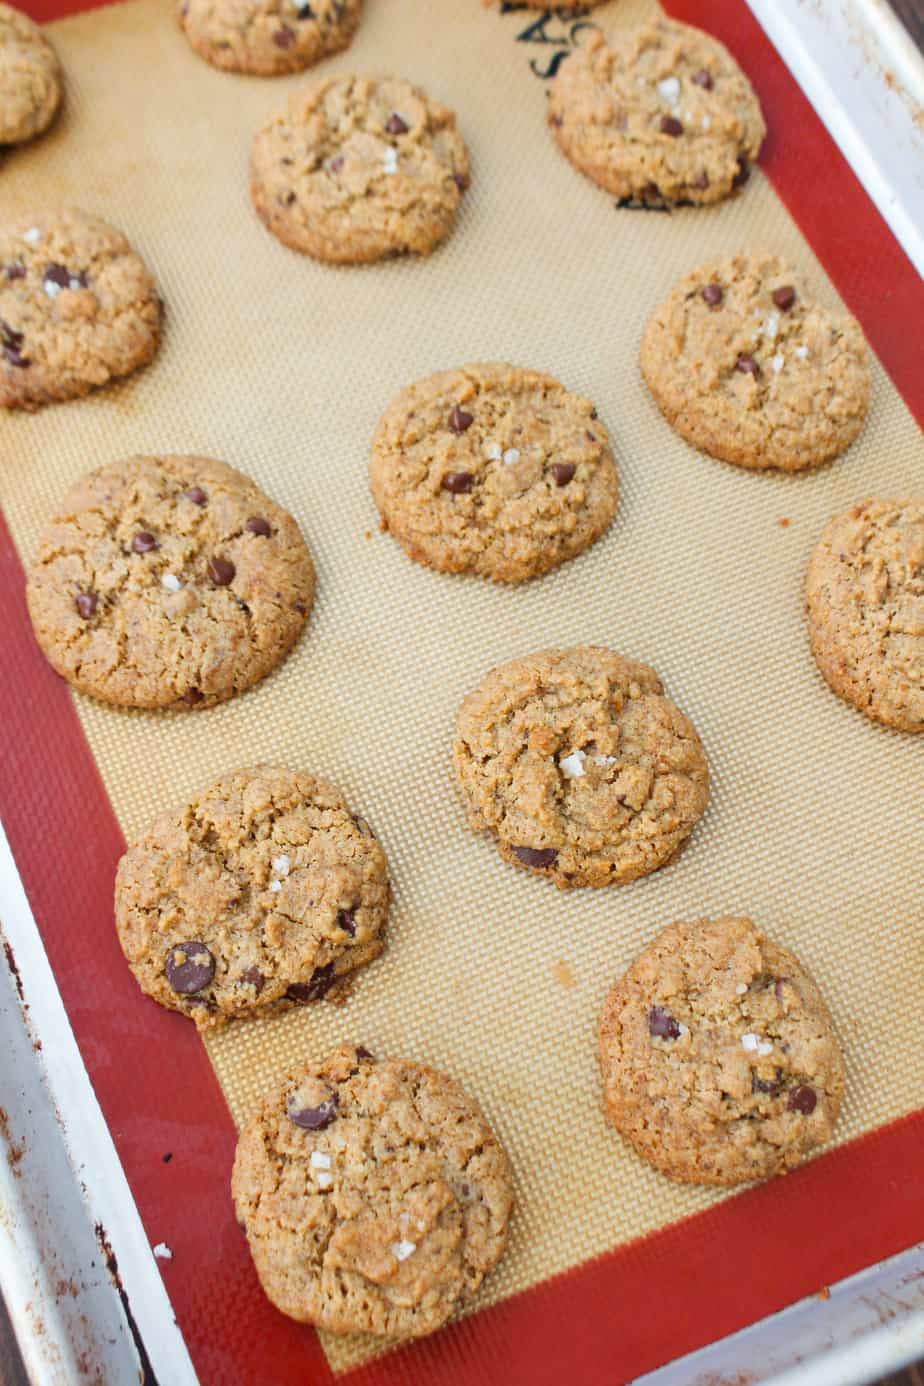 Homemade Allergy Friendly Chocolate Chip Cookies | Frugal Nutrition